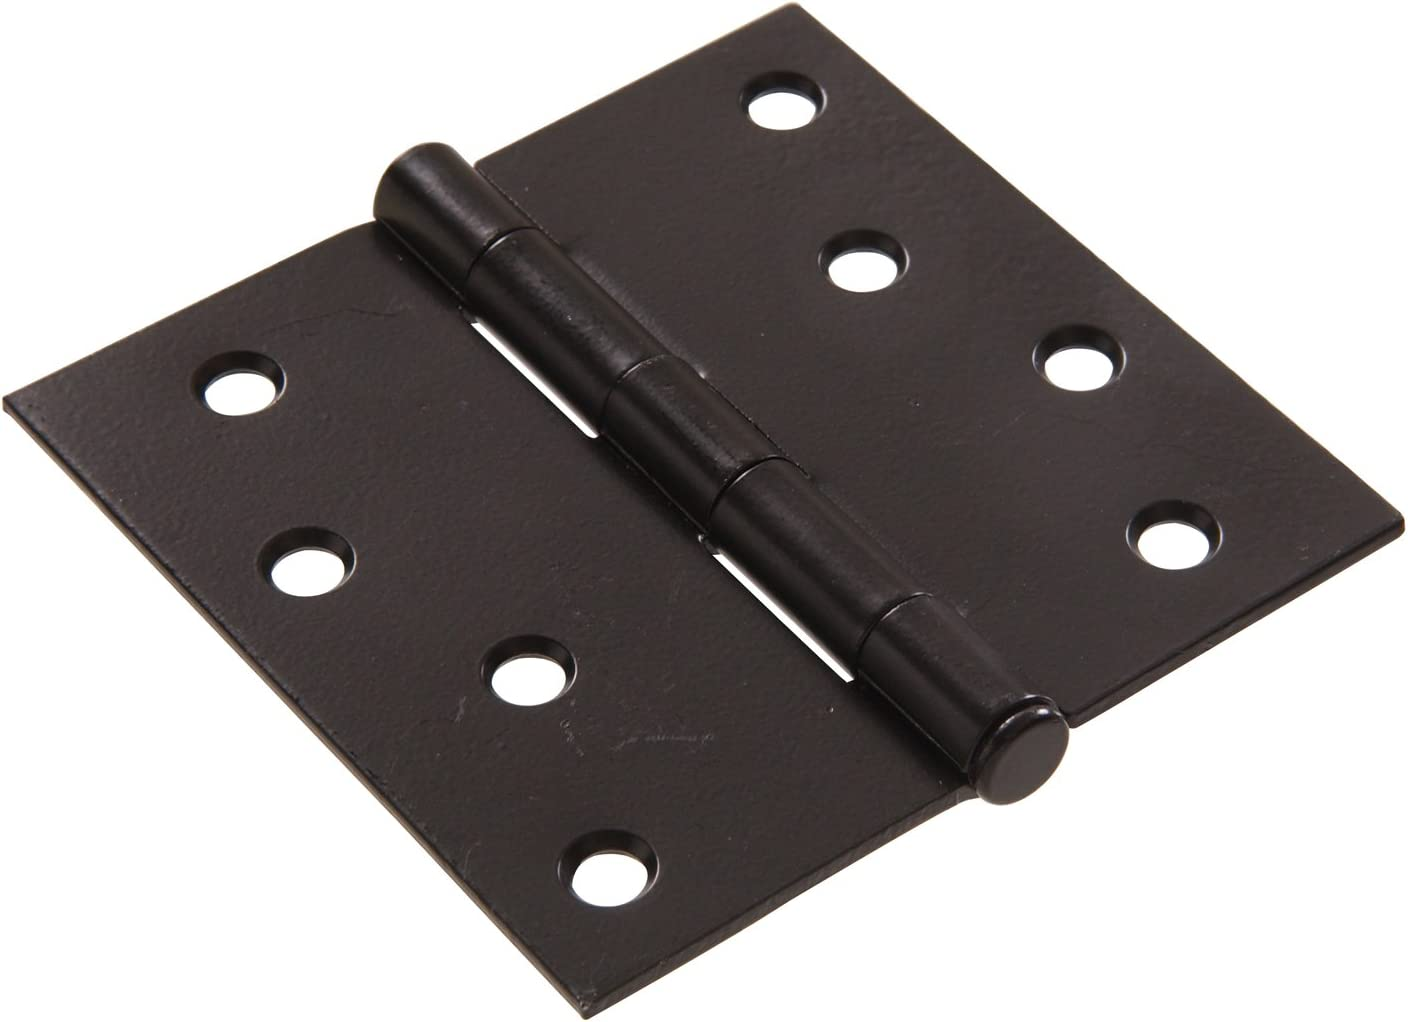 Hillman Hardware Essentials 851286 Residential Square Corner Door Hinges with Removable Pin White 3 2-Pack